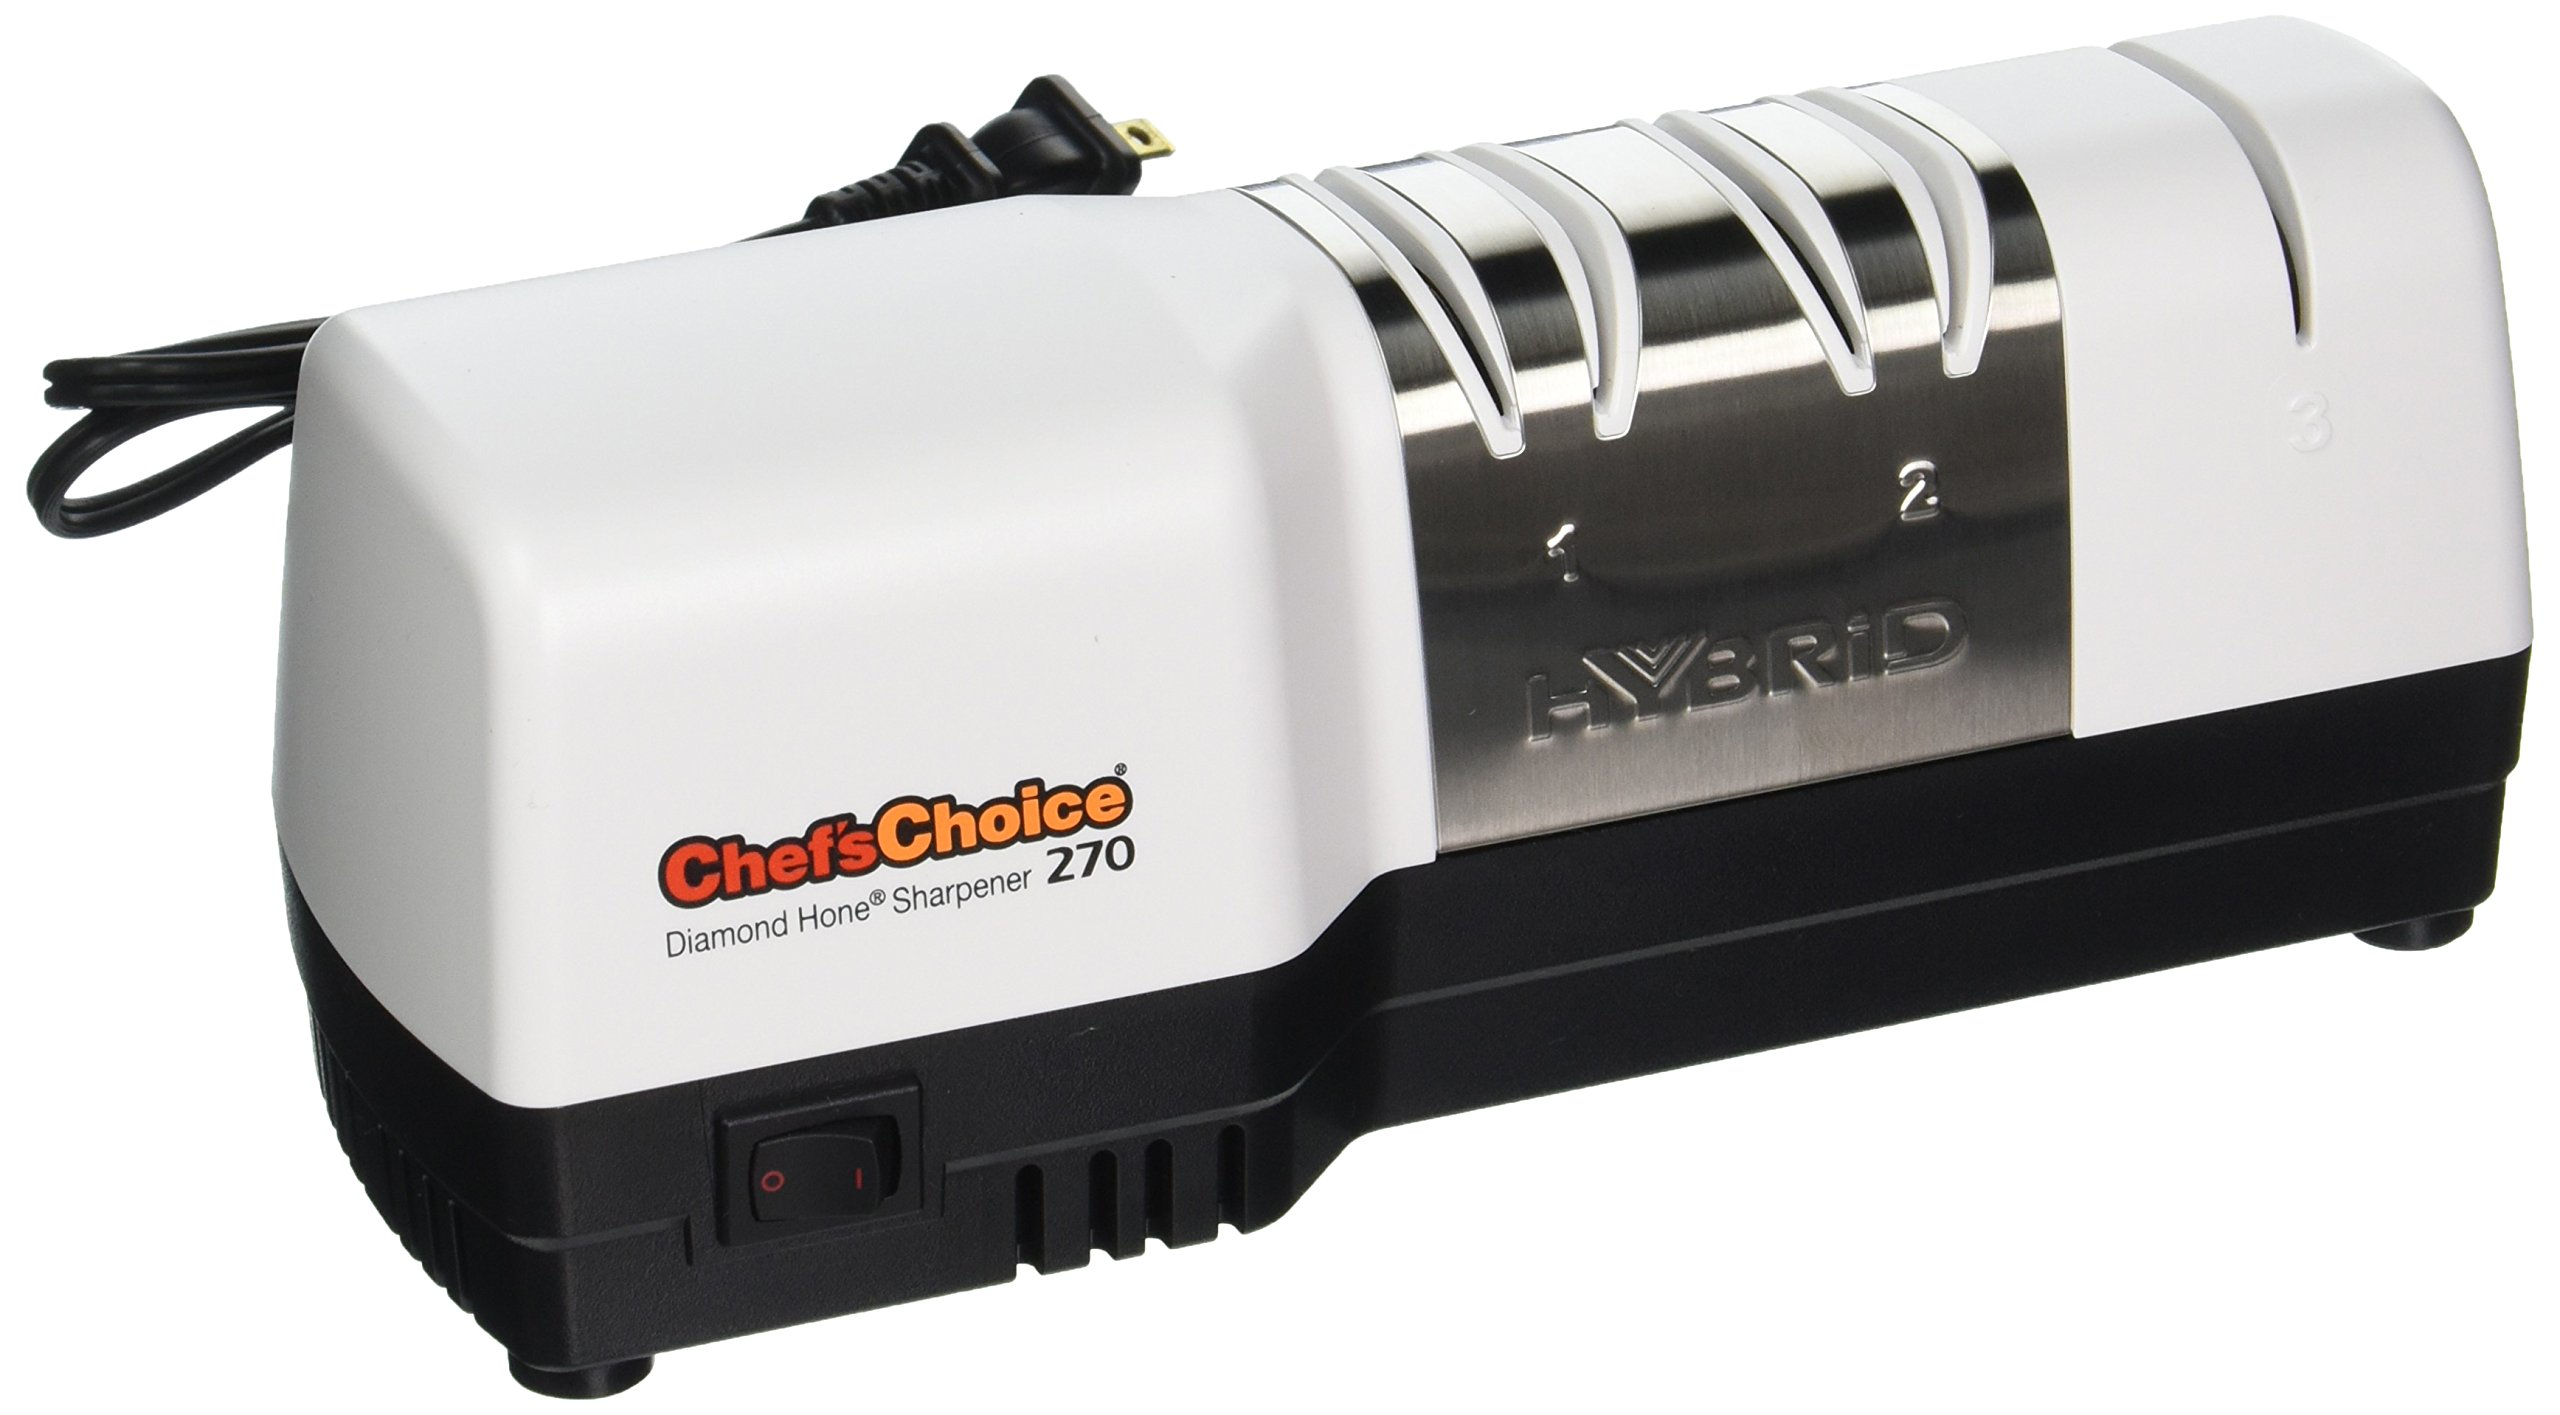 Chef'sChoice 270 Hybrid Diamond Hone Knife Sharpener Combines Electric and Manual Sharpening for Straight and Serrated 20-Degree Knives Made in USA, 3-Stage, White by Chef'sChoice